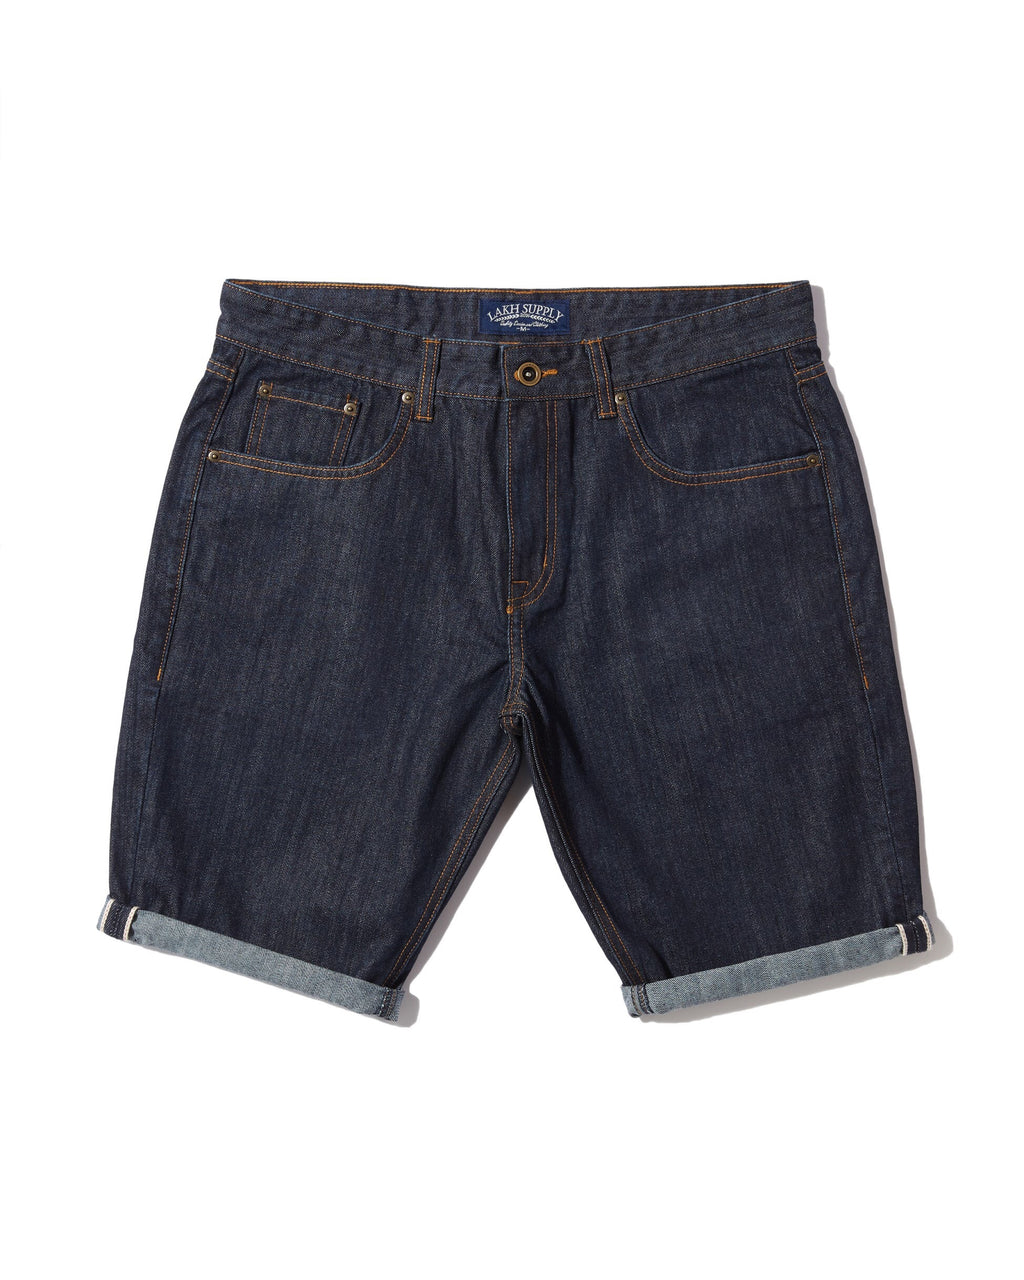 Shorts - Rinse Wash Navy